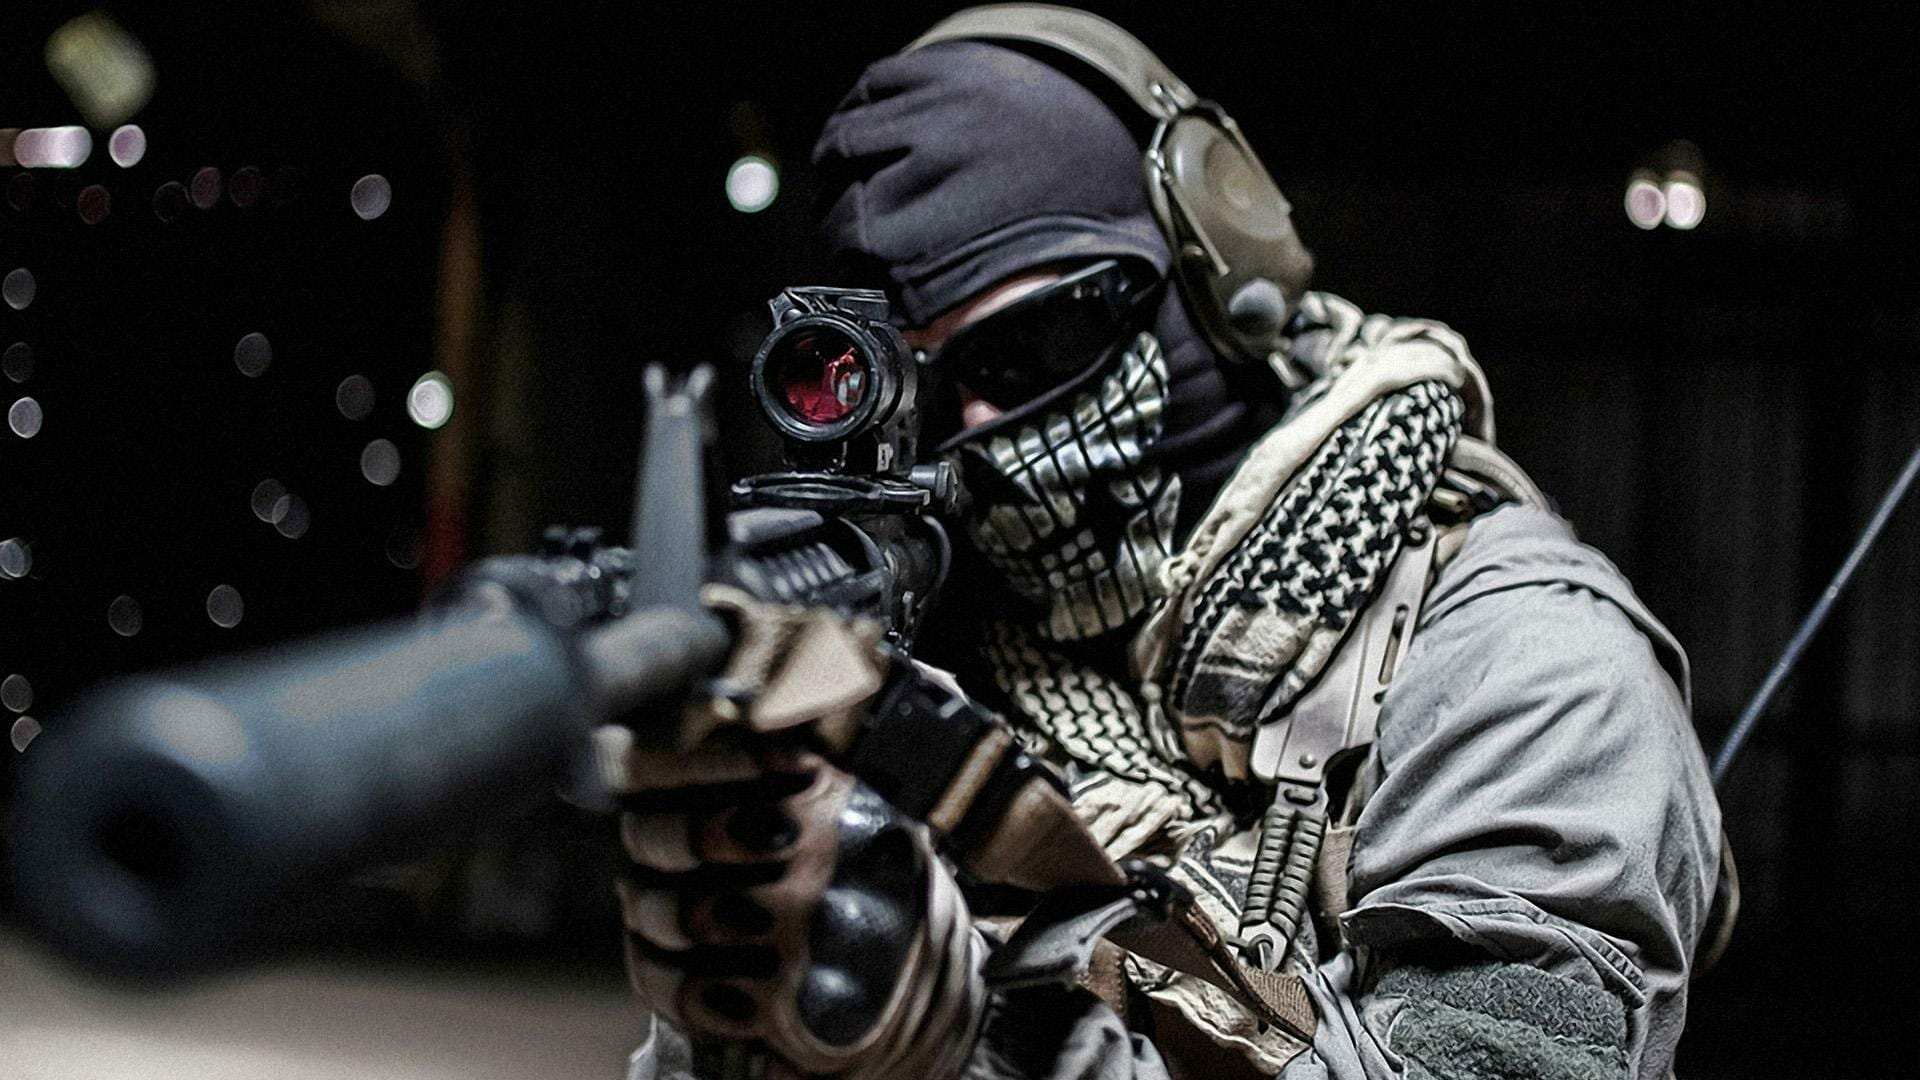 Why Call of Duty Ghosts is Considered the Worst C.O.D Game